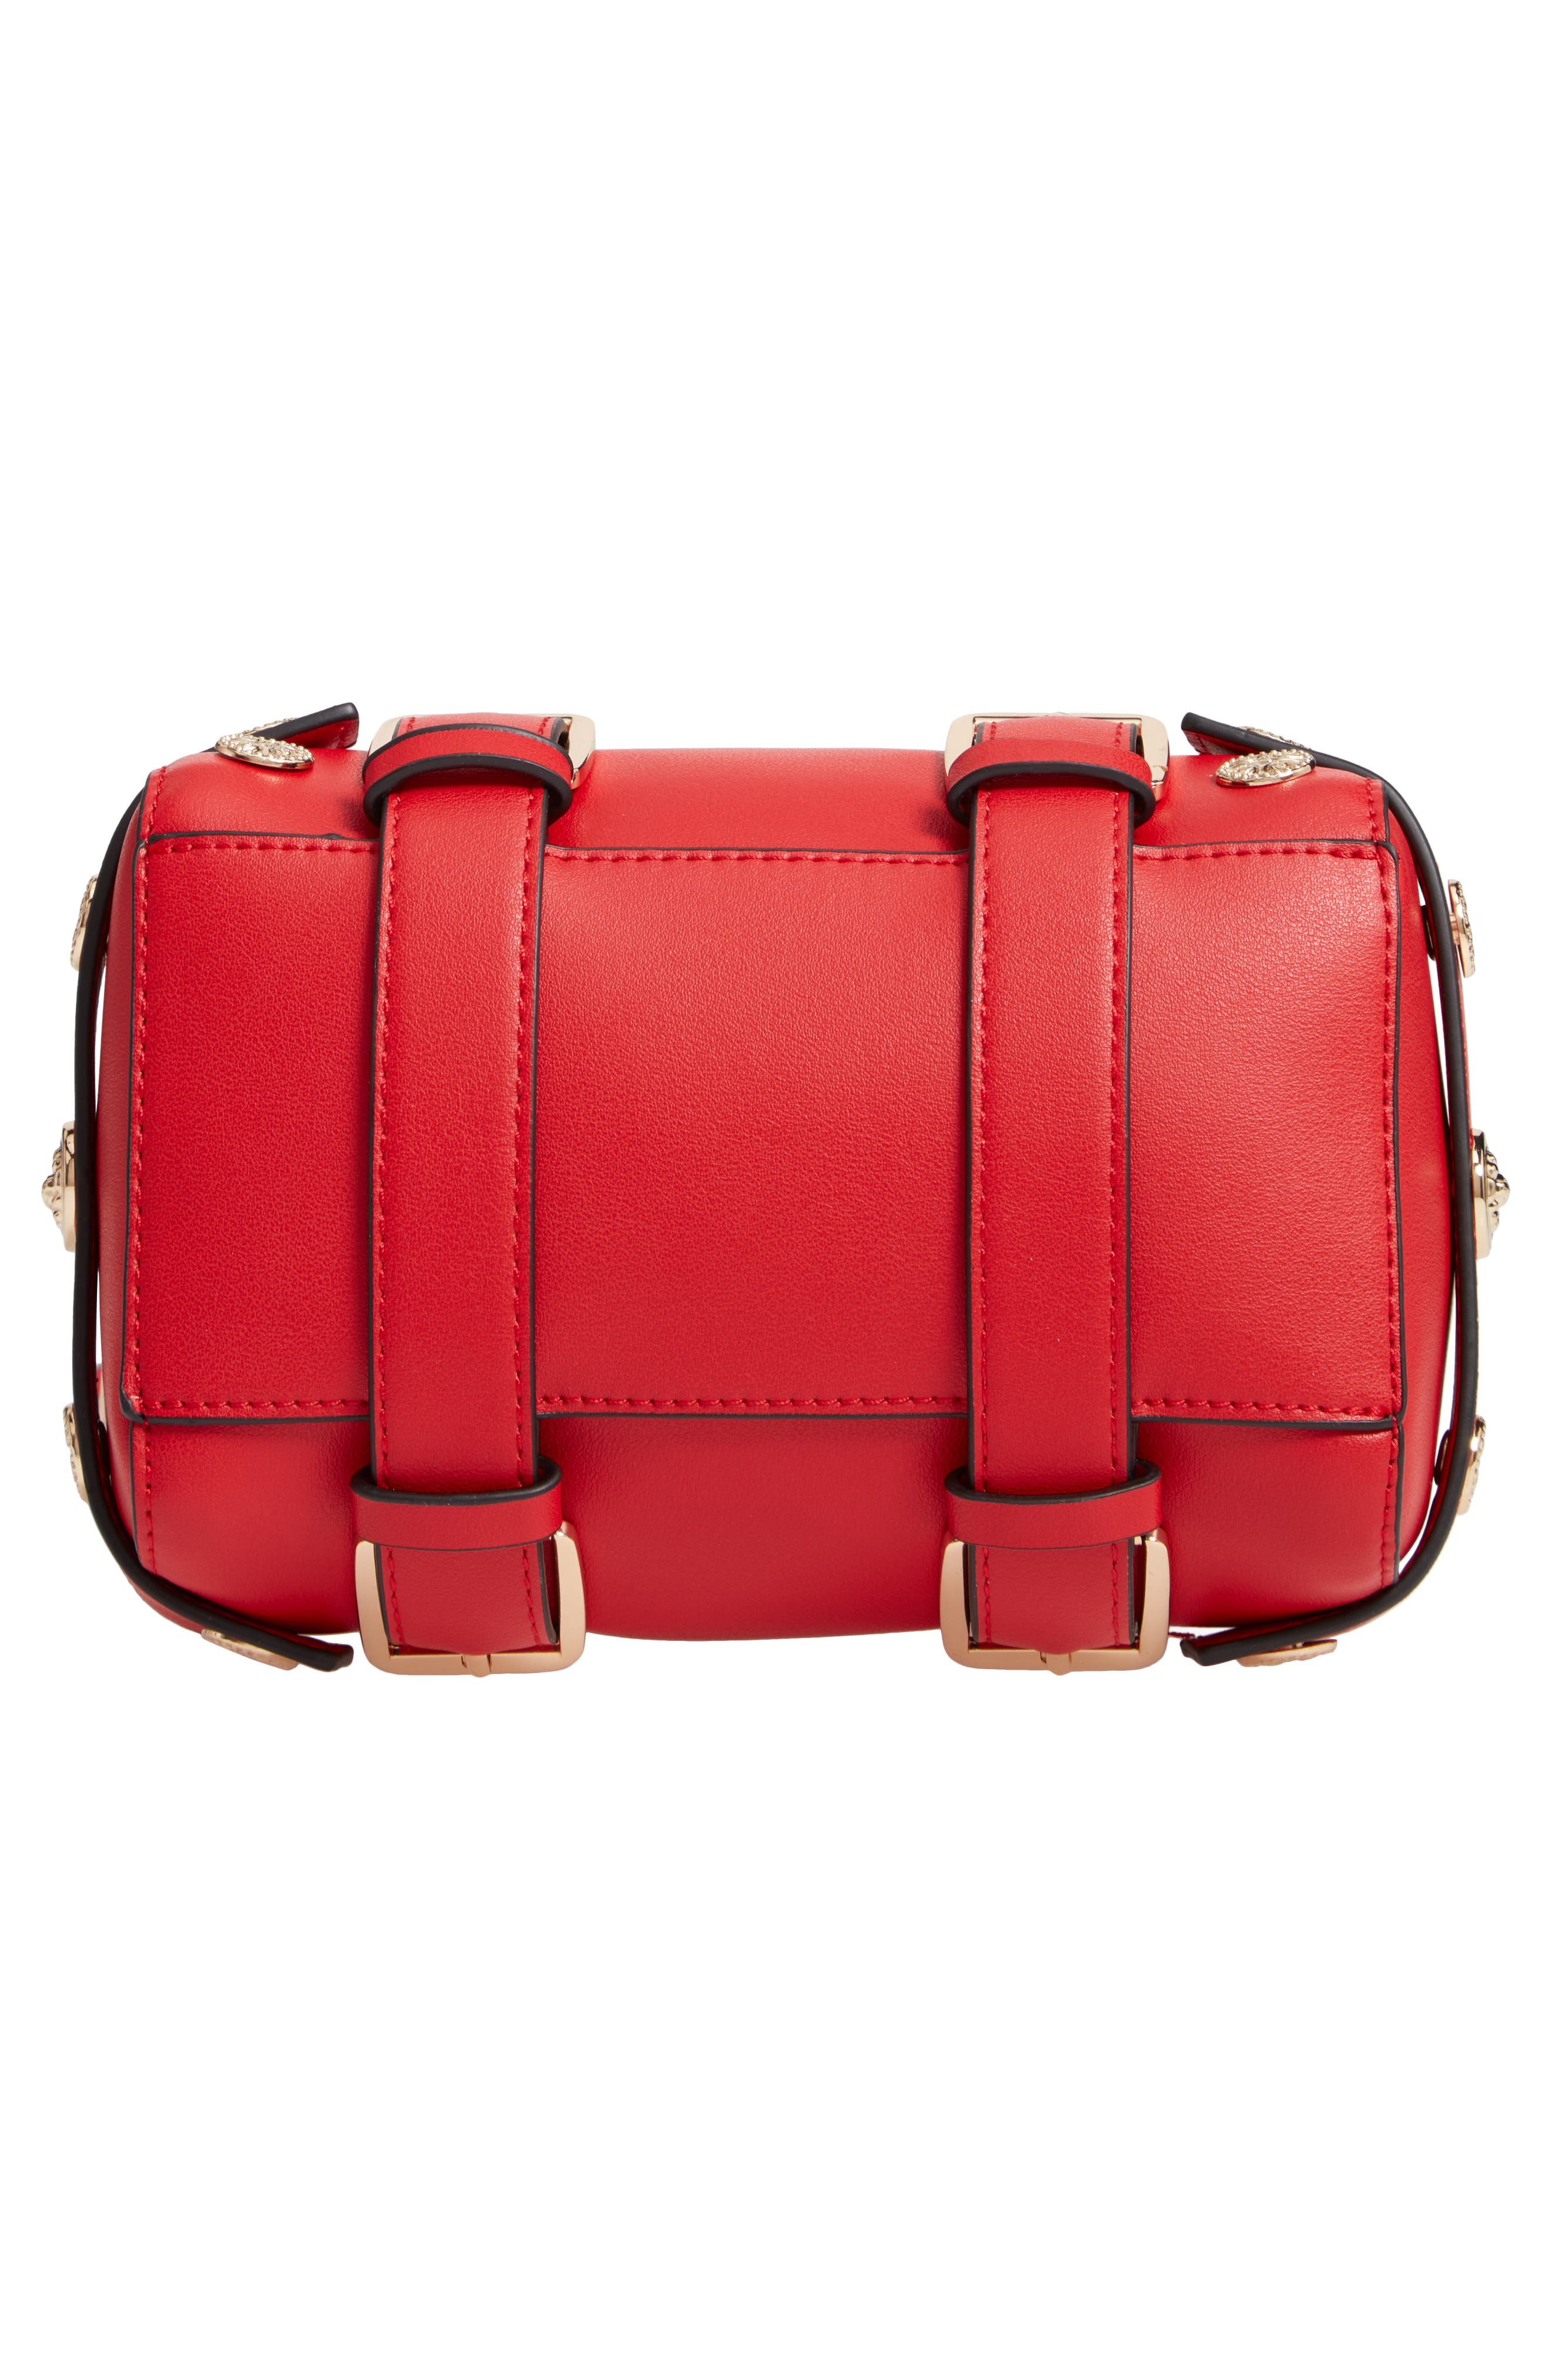 Bianca Studded Faux Leather Bowler Bag,                             Alternate thumbnail 6, color,                             RED MULTI